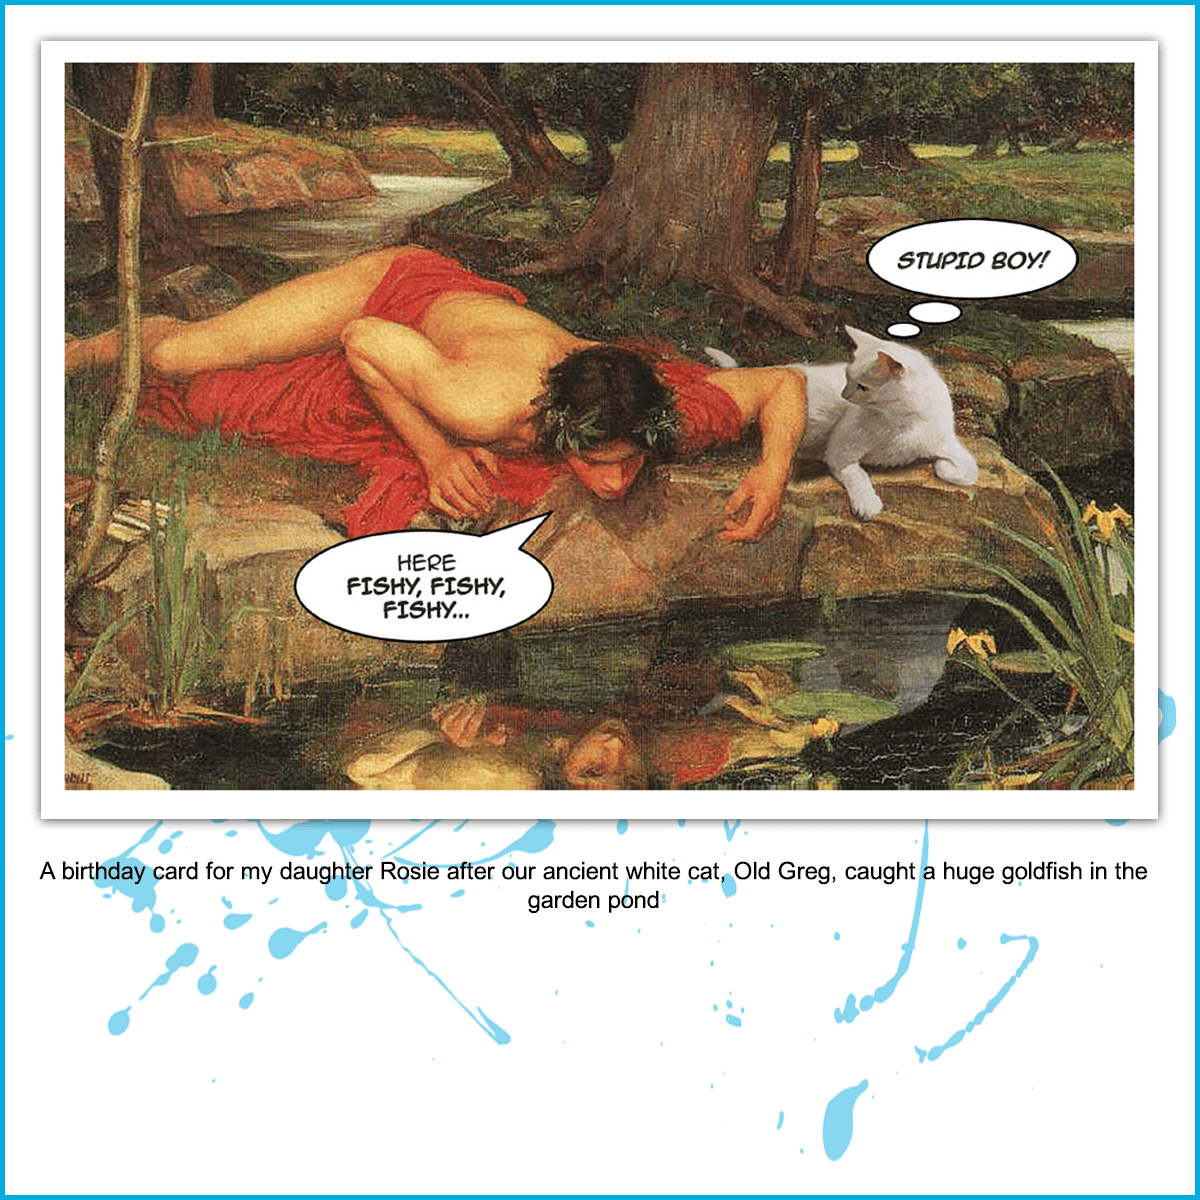 Narcissus and Old Greg fishing